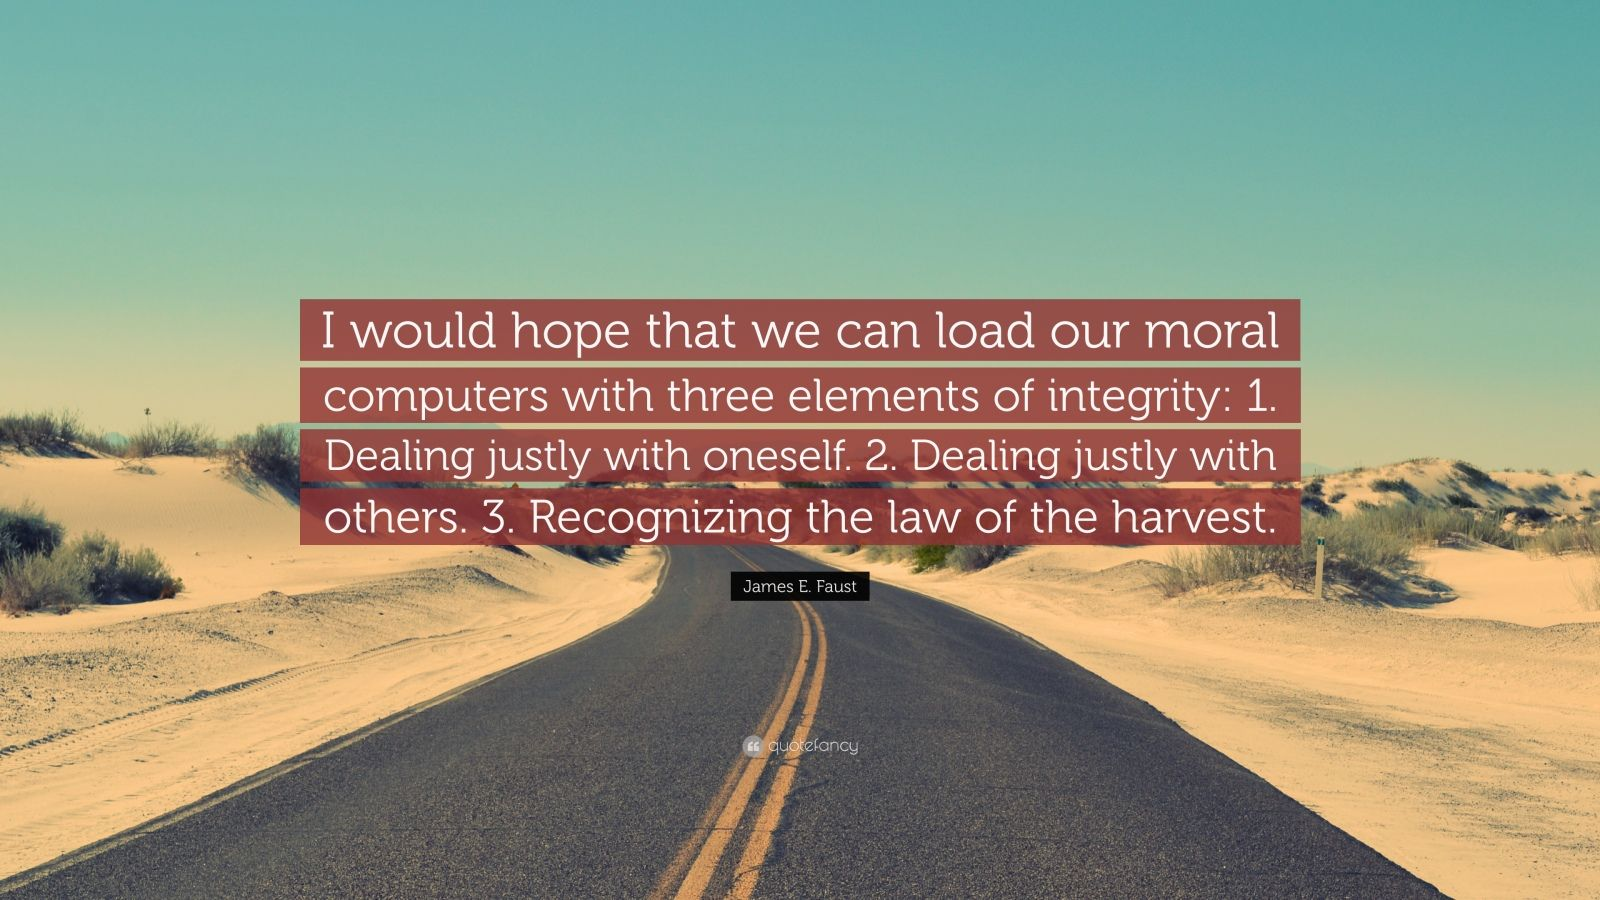 """James E. Faust Quote: """"I would hope that we can load our moral computers with three elements of integrity: 1. Dealing justly with oneself. 2. Dealing justly with others. 3. Recognizing the law of the harvest."""""""